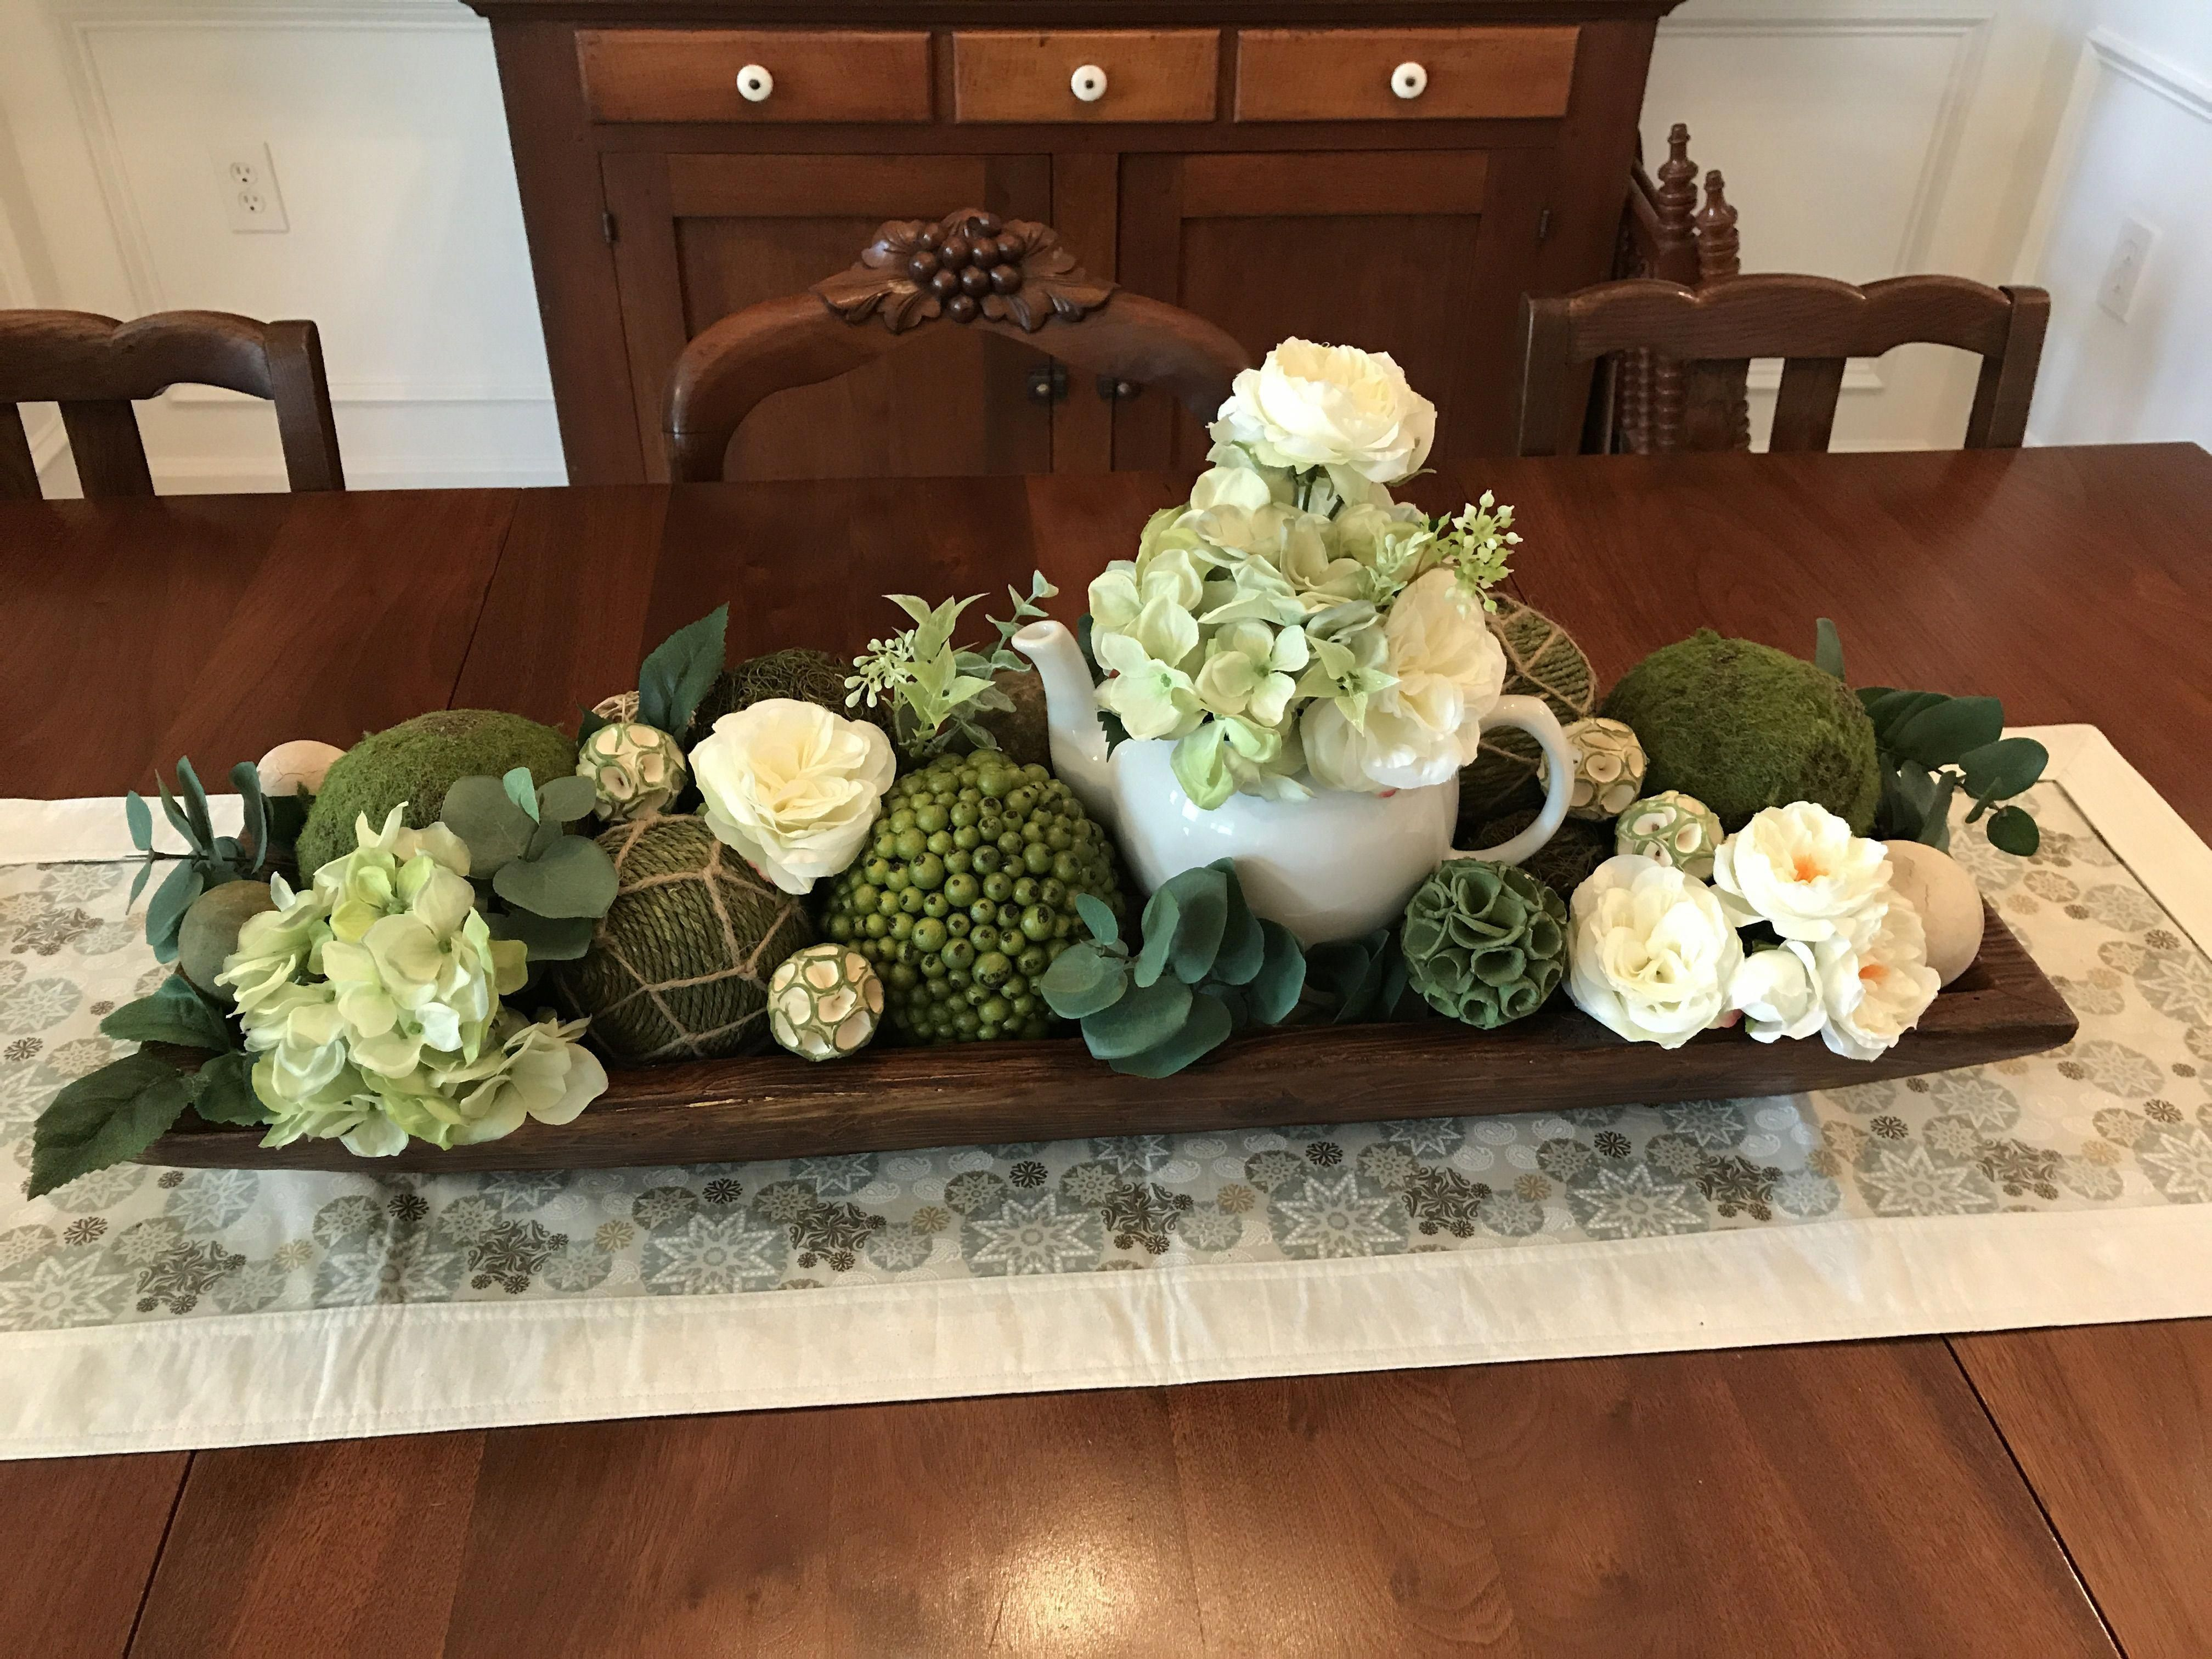 Spring Decorating Ideas For Dining Room Table Dining Room Decor Table Decor Dining Room Table Centerpieces Dining Table Centerpiece Dining Room Table Decor